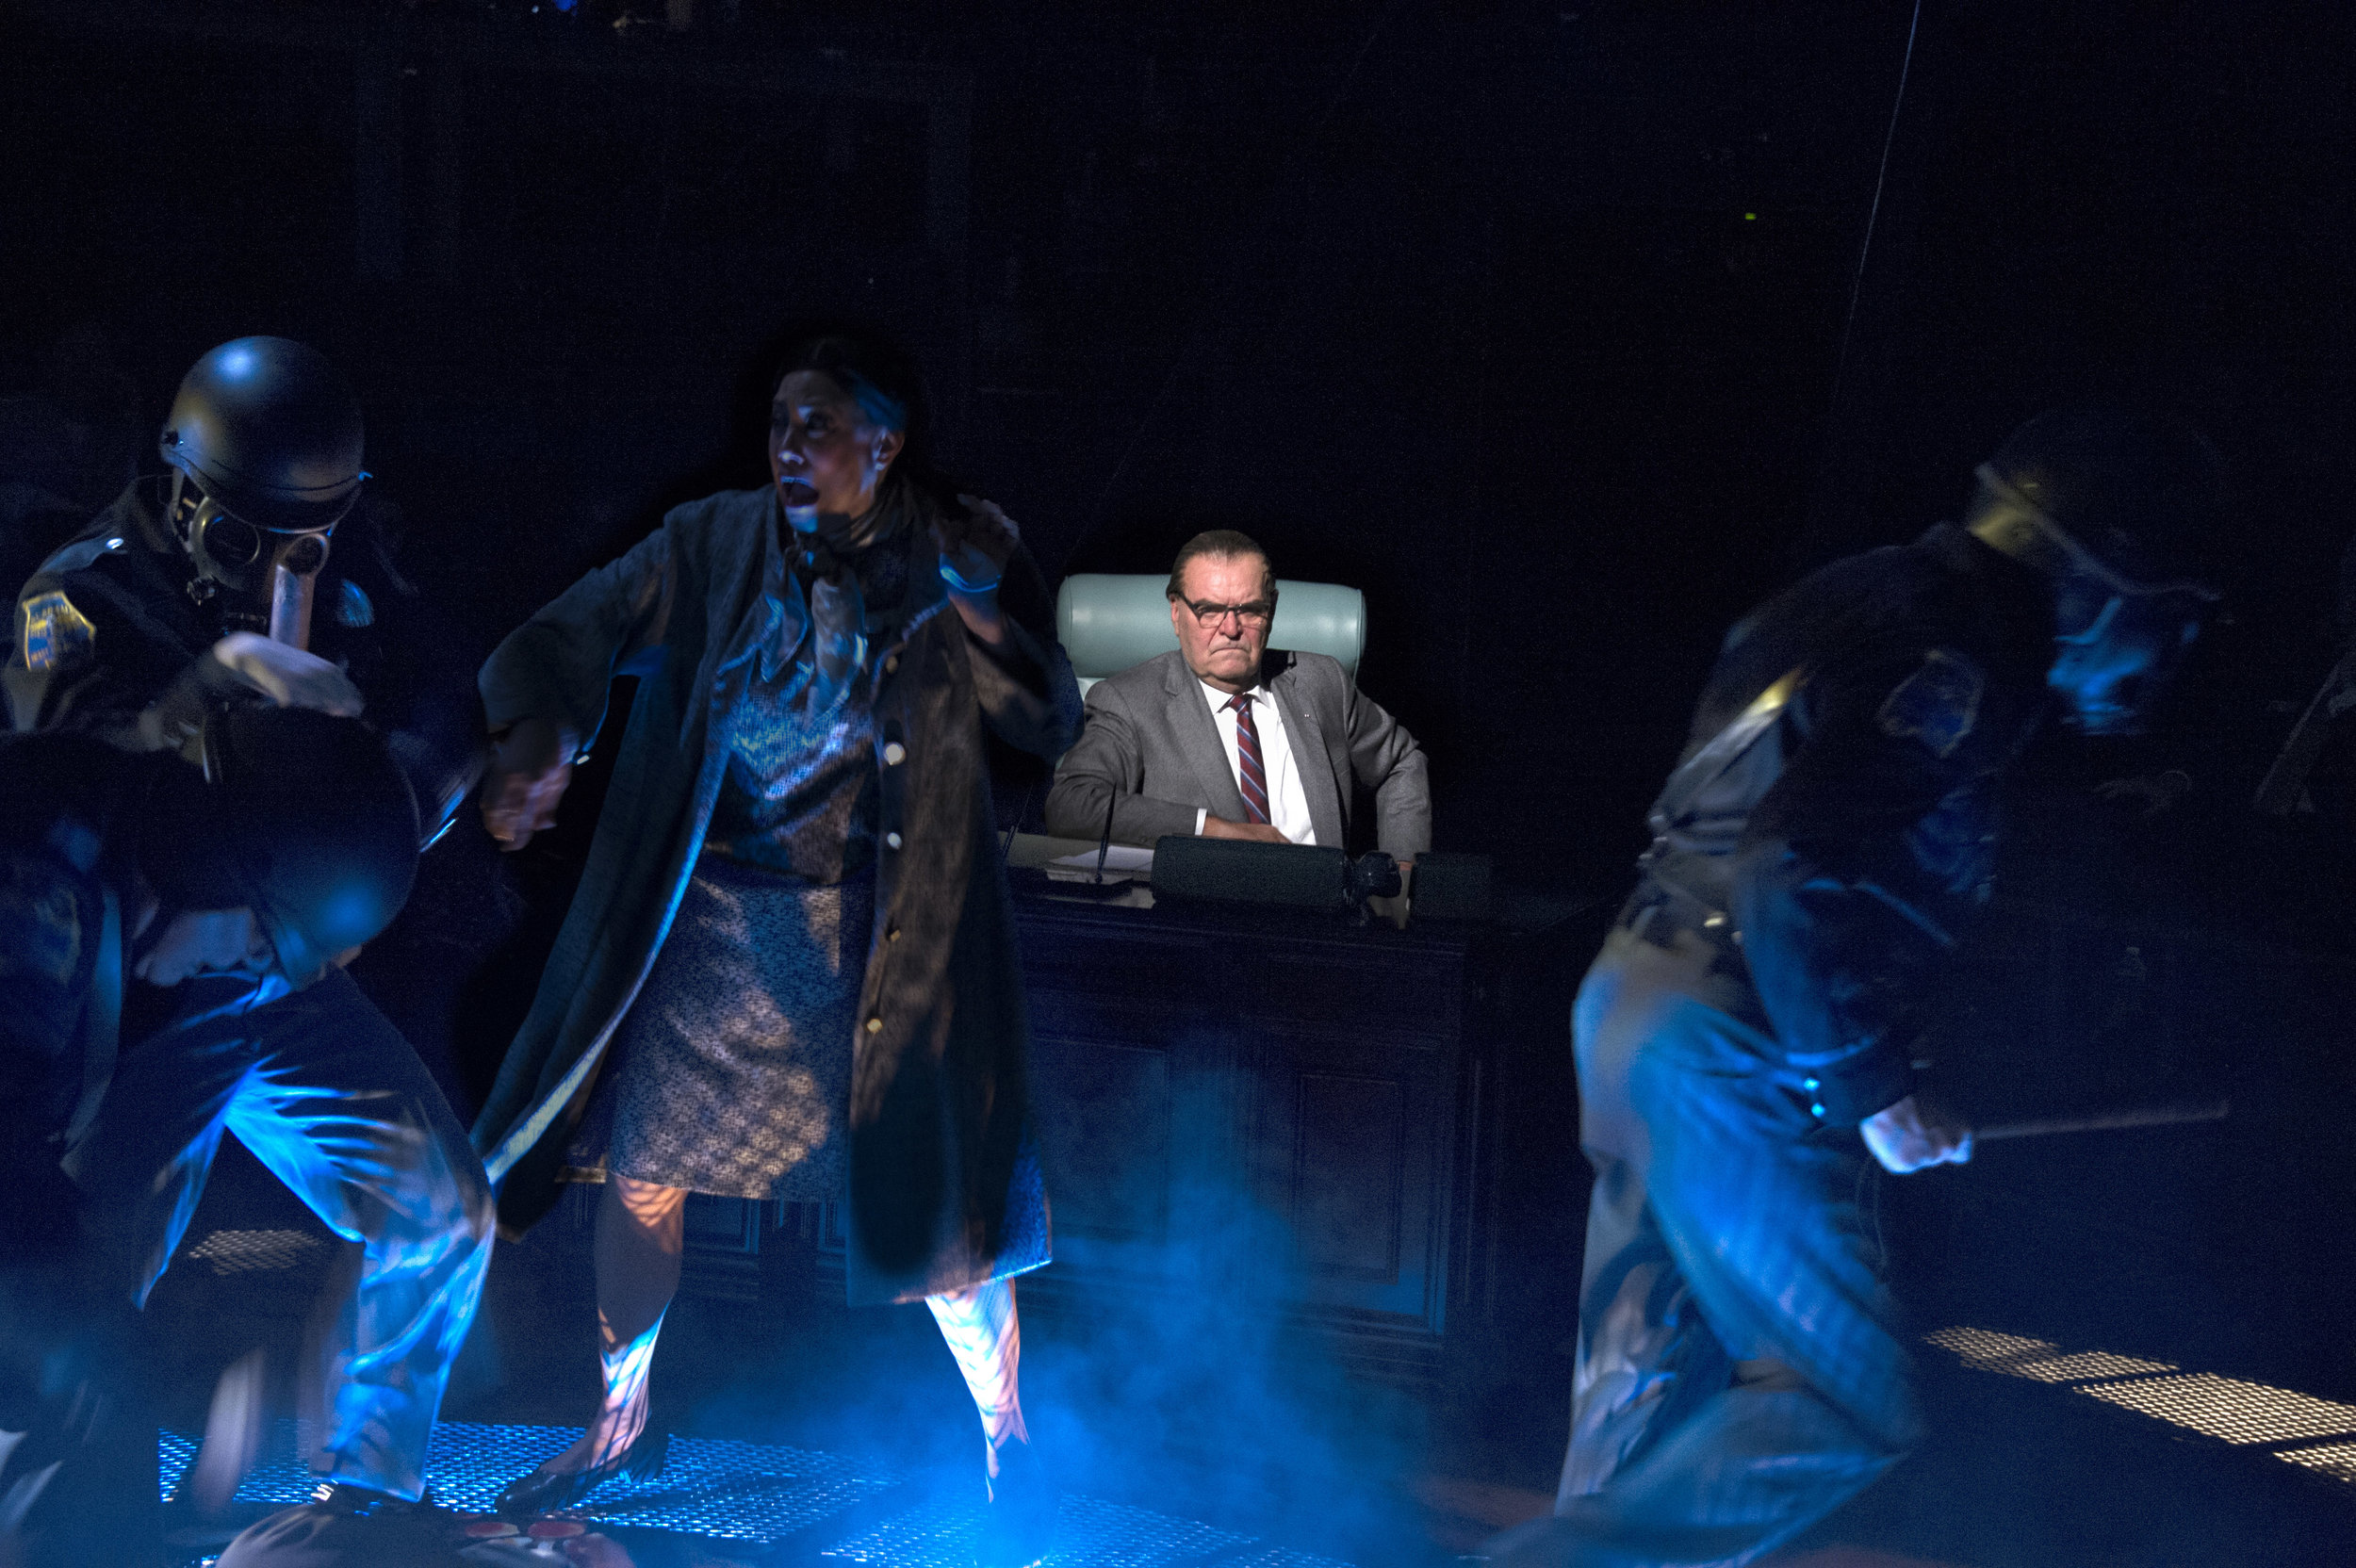 All Occasions Do Inform Against him: Jack Willis as LBJ, with Elliott Bales, Brook Berry, Alana D. Sharp and Andrew Weems (C. Stanley Photography)